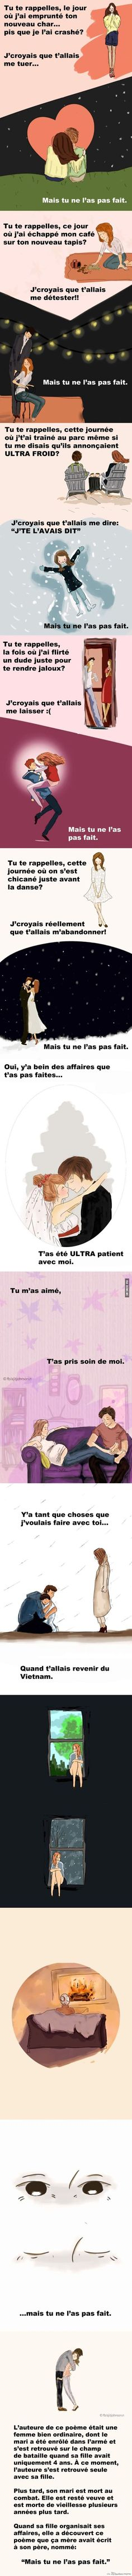 Best Memes About Relationships Sad True Stories Ideas Love Poems, Love Quotes, Einstein, Sad Comics, Comics Story, Quote Citation, Cute Stories, French Quotes, Relationship Memes